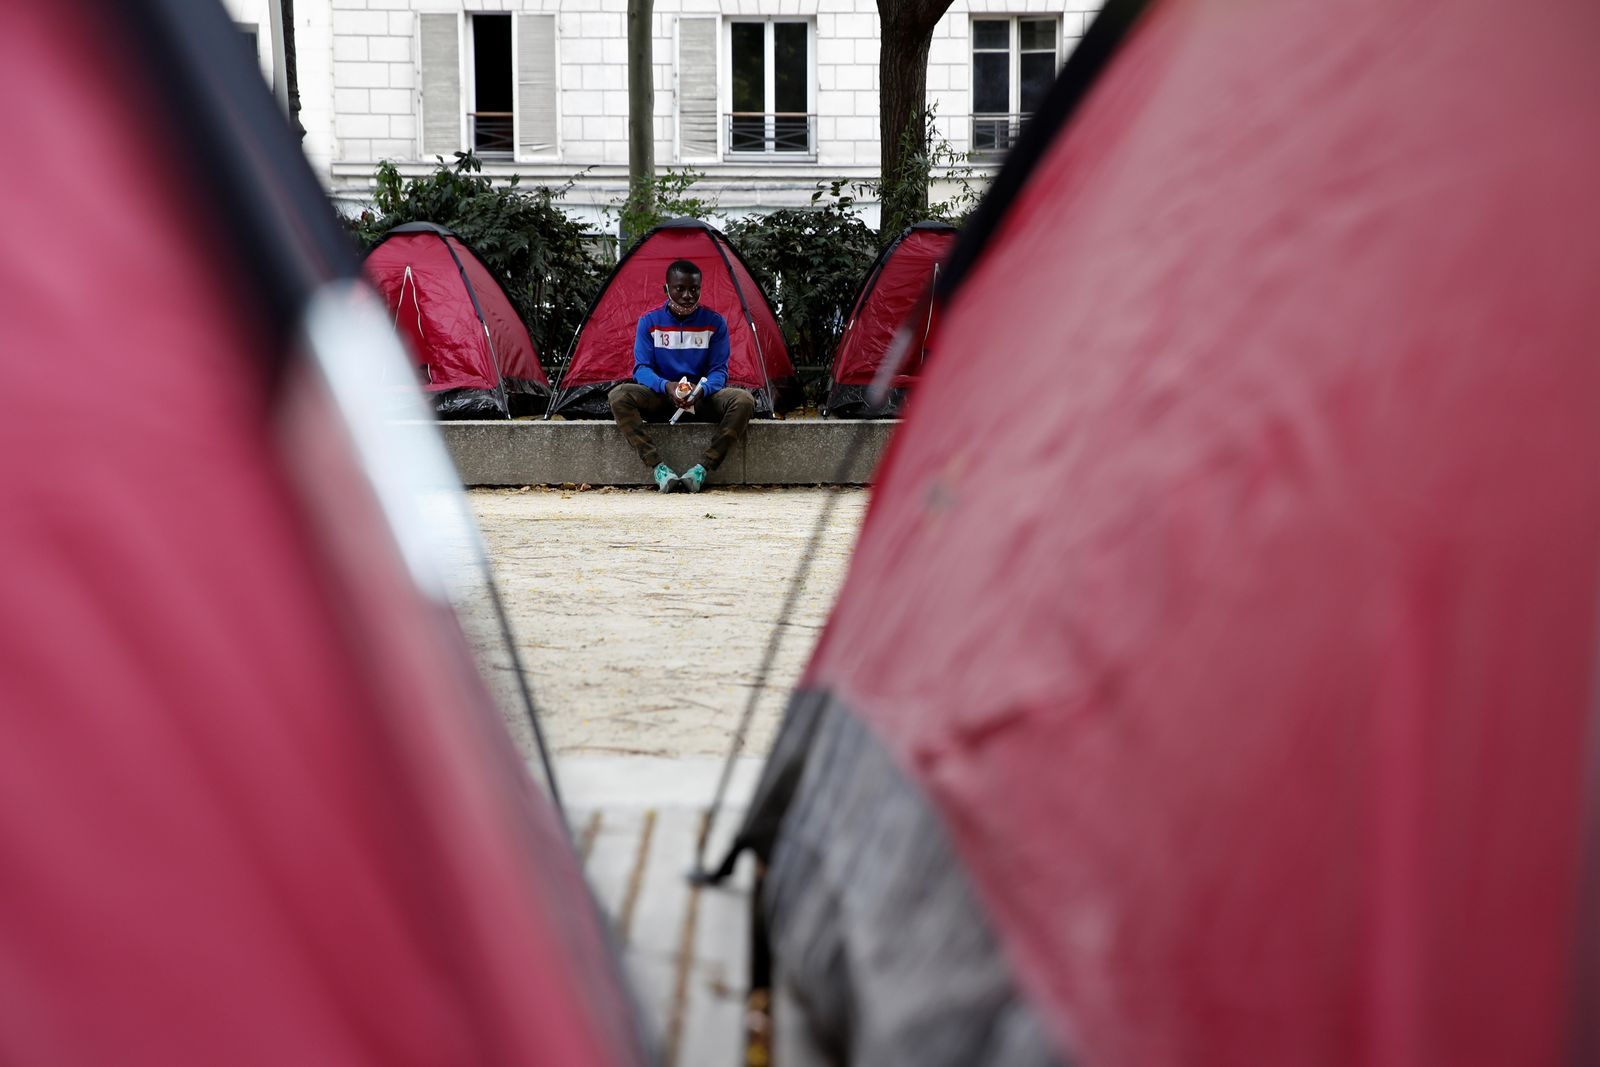 Groups set up adolescent migrant camp in Paris to highlight their plight